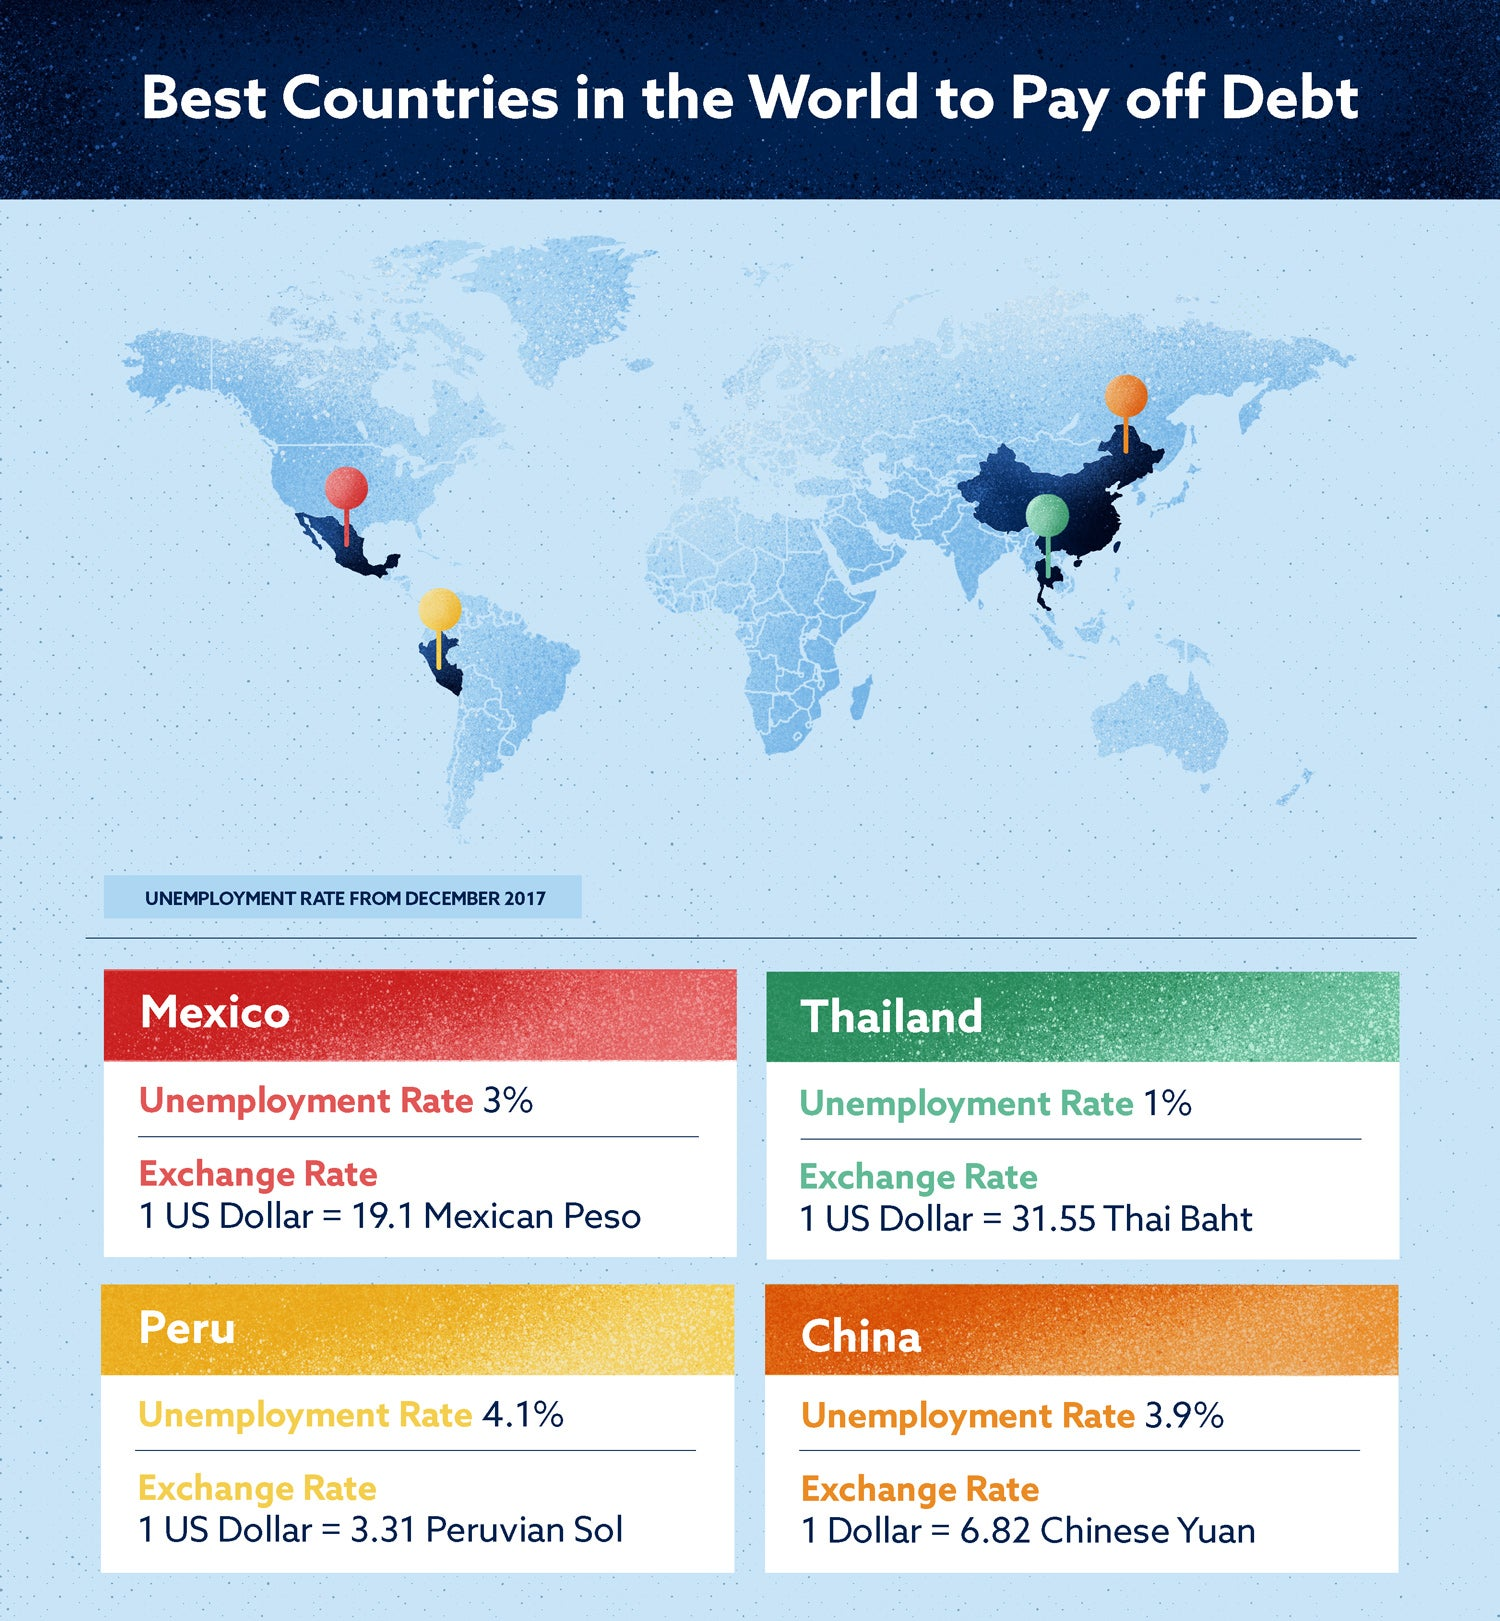 best countries in the world to pay off debt